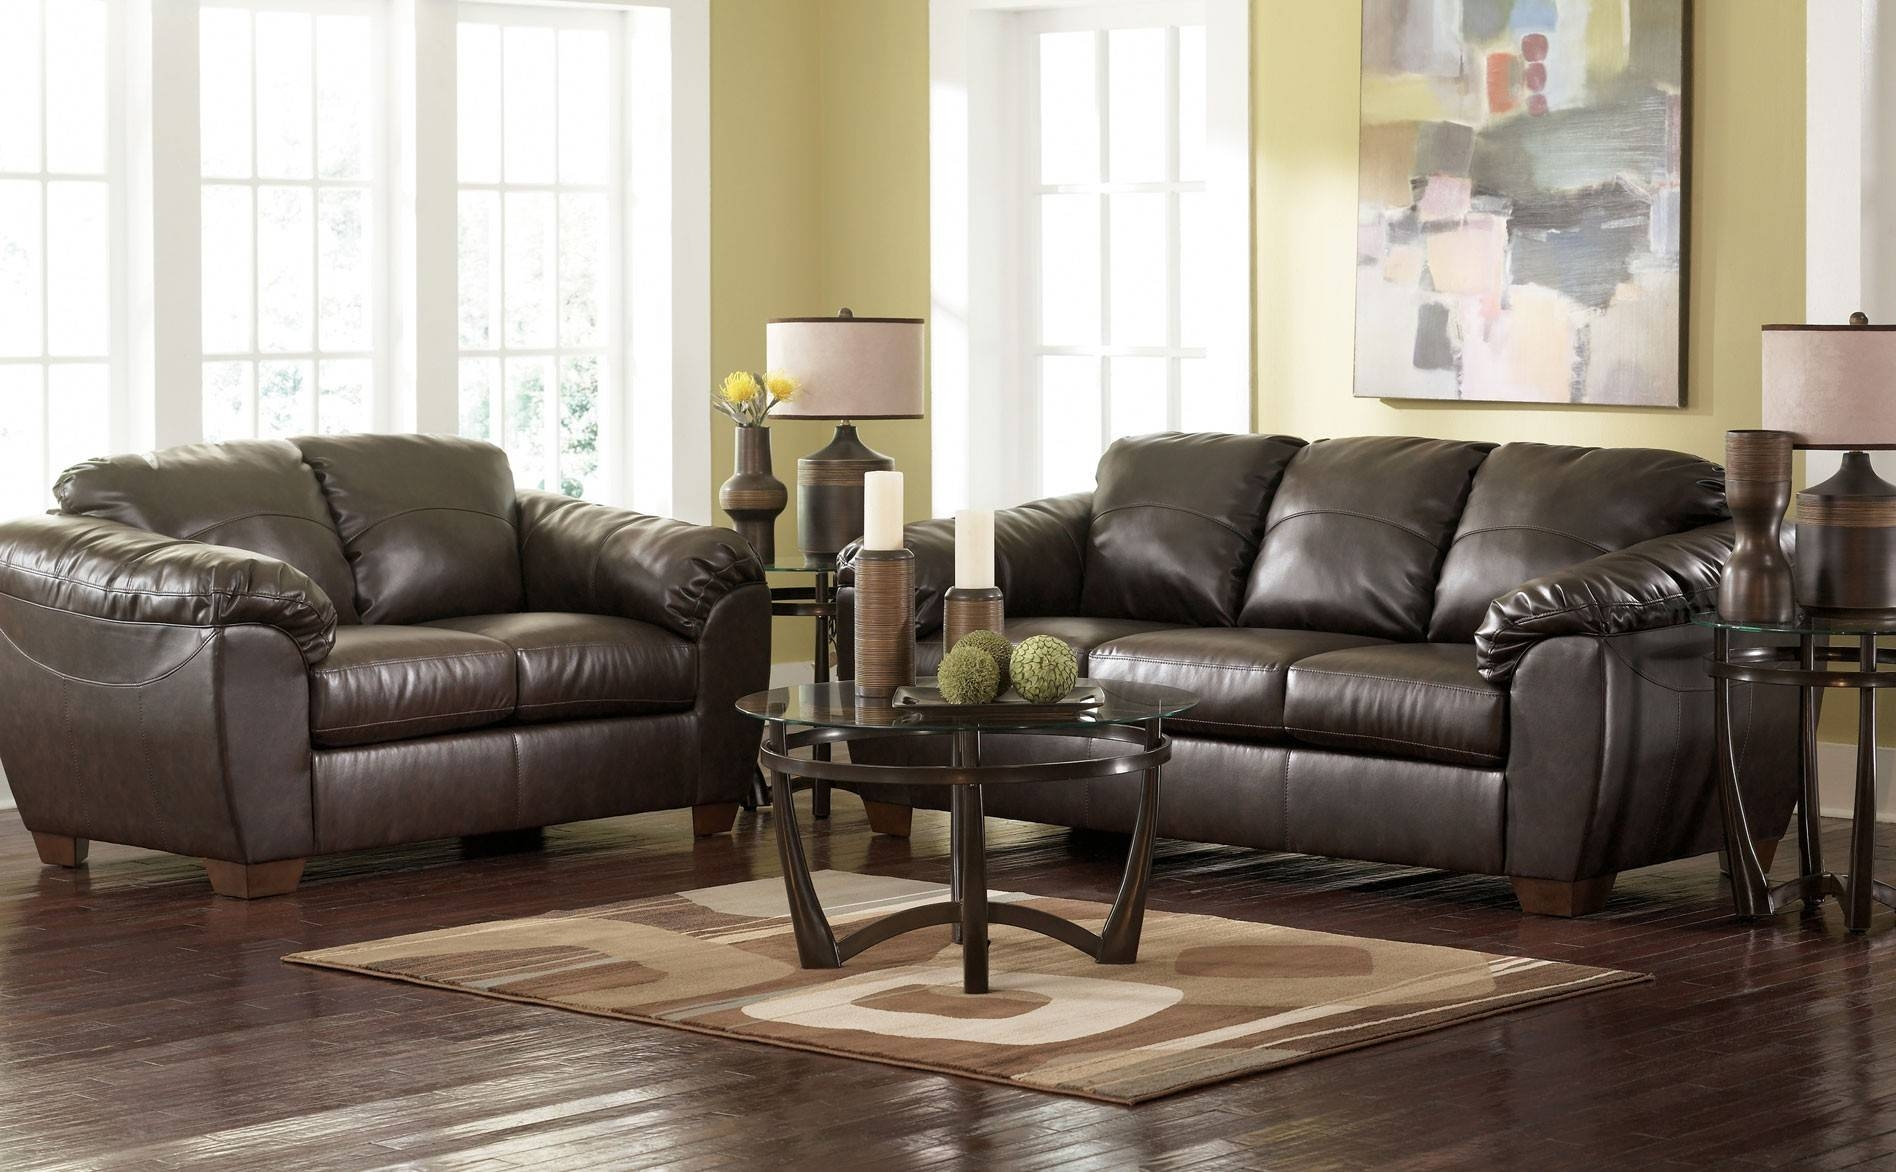 Leather Sectional Sofa Ashley Furniture - Home And Interior with Ashley Corduroy Sectional Sofas (Image 12 of 15)